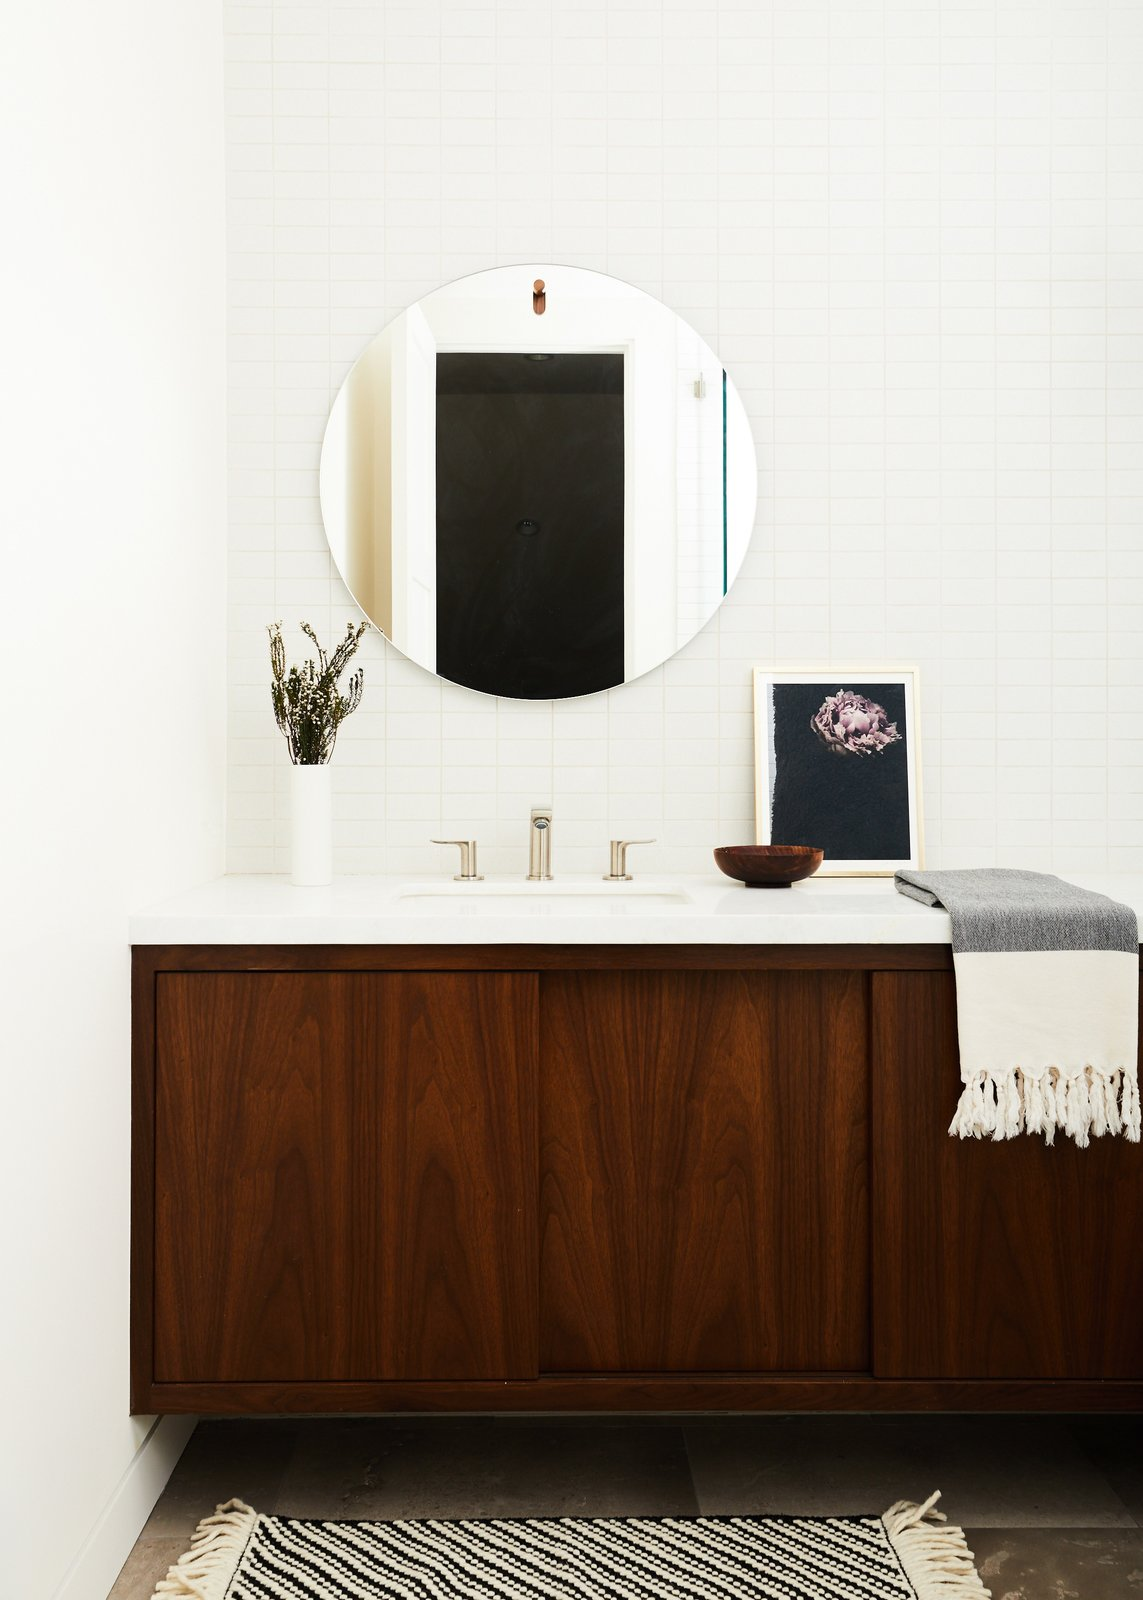 Bath Room, Undermount Sink, Subway Tile Wall, Marble Counter, and Ceramic Tile Wall Guest Bathroom  The Strand Residence